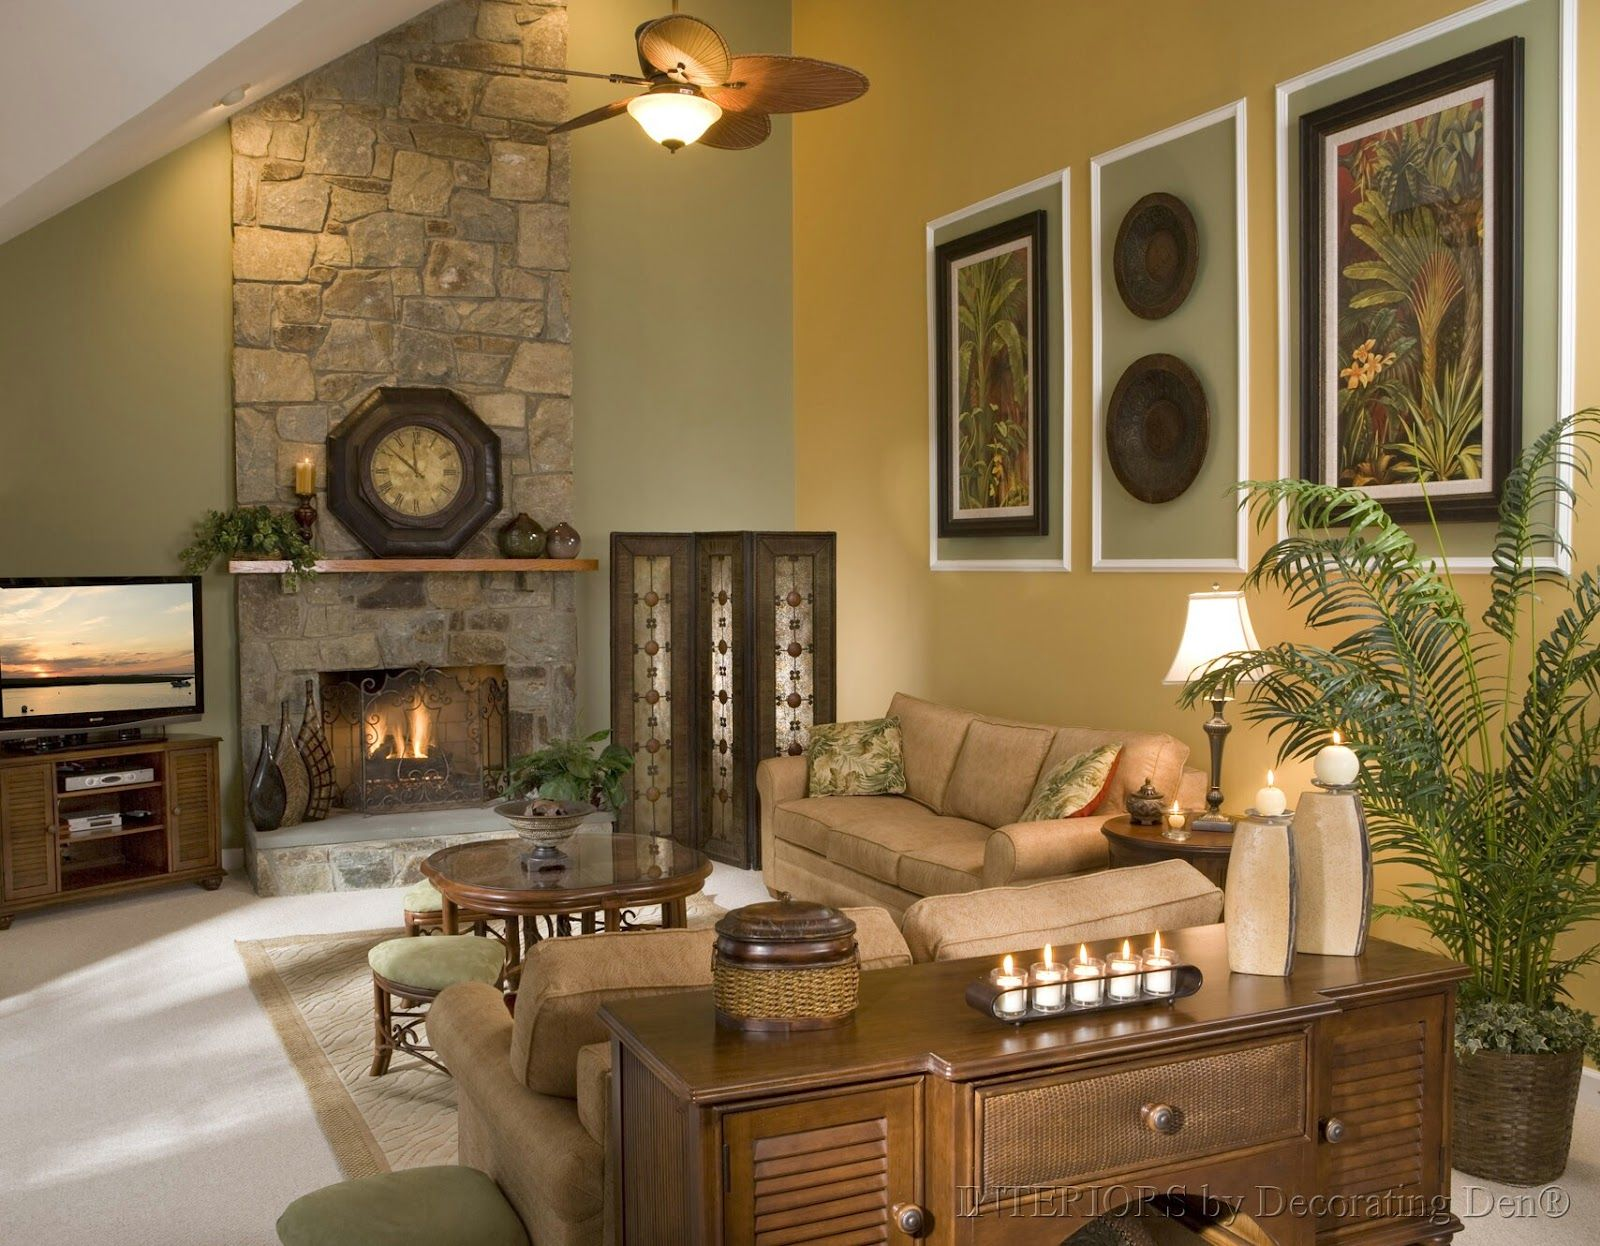 How To Decorate A Living Room Wall With Vaulted Ceilings - Wall ...